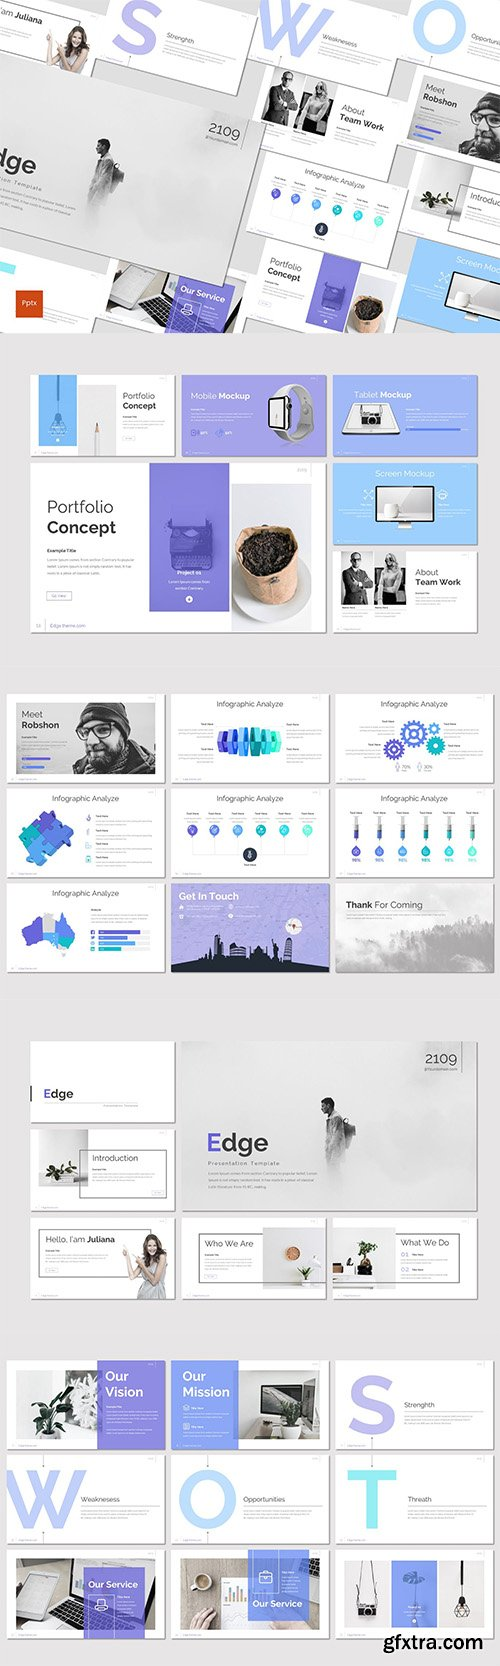 Edge - Powerpoint, Keynote and Google Slides Templates